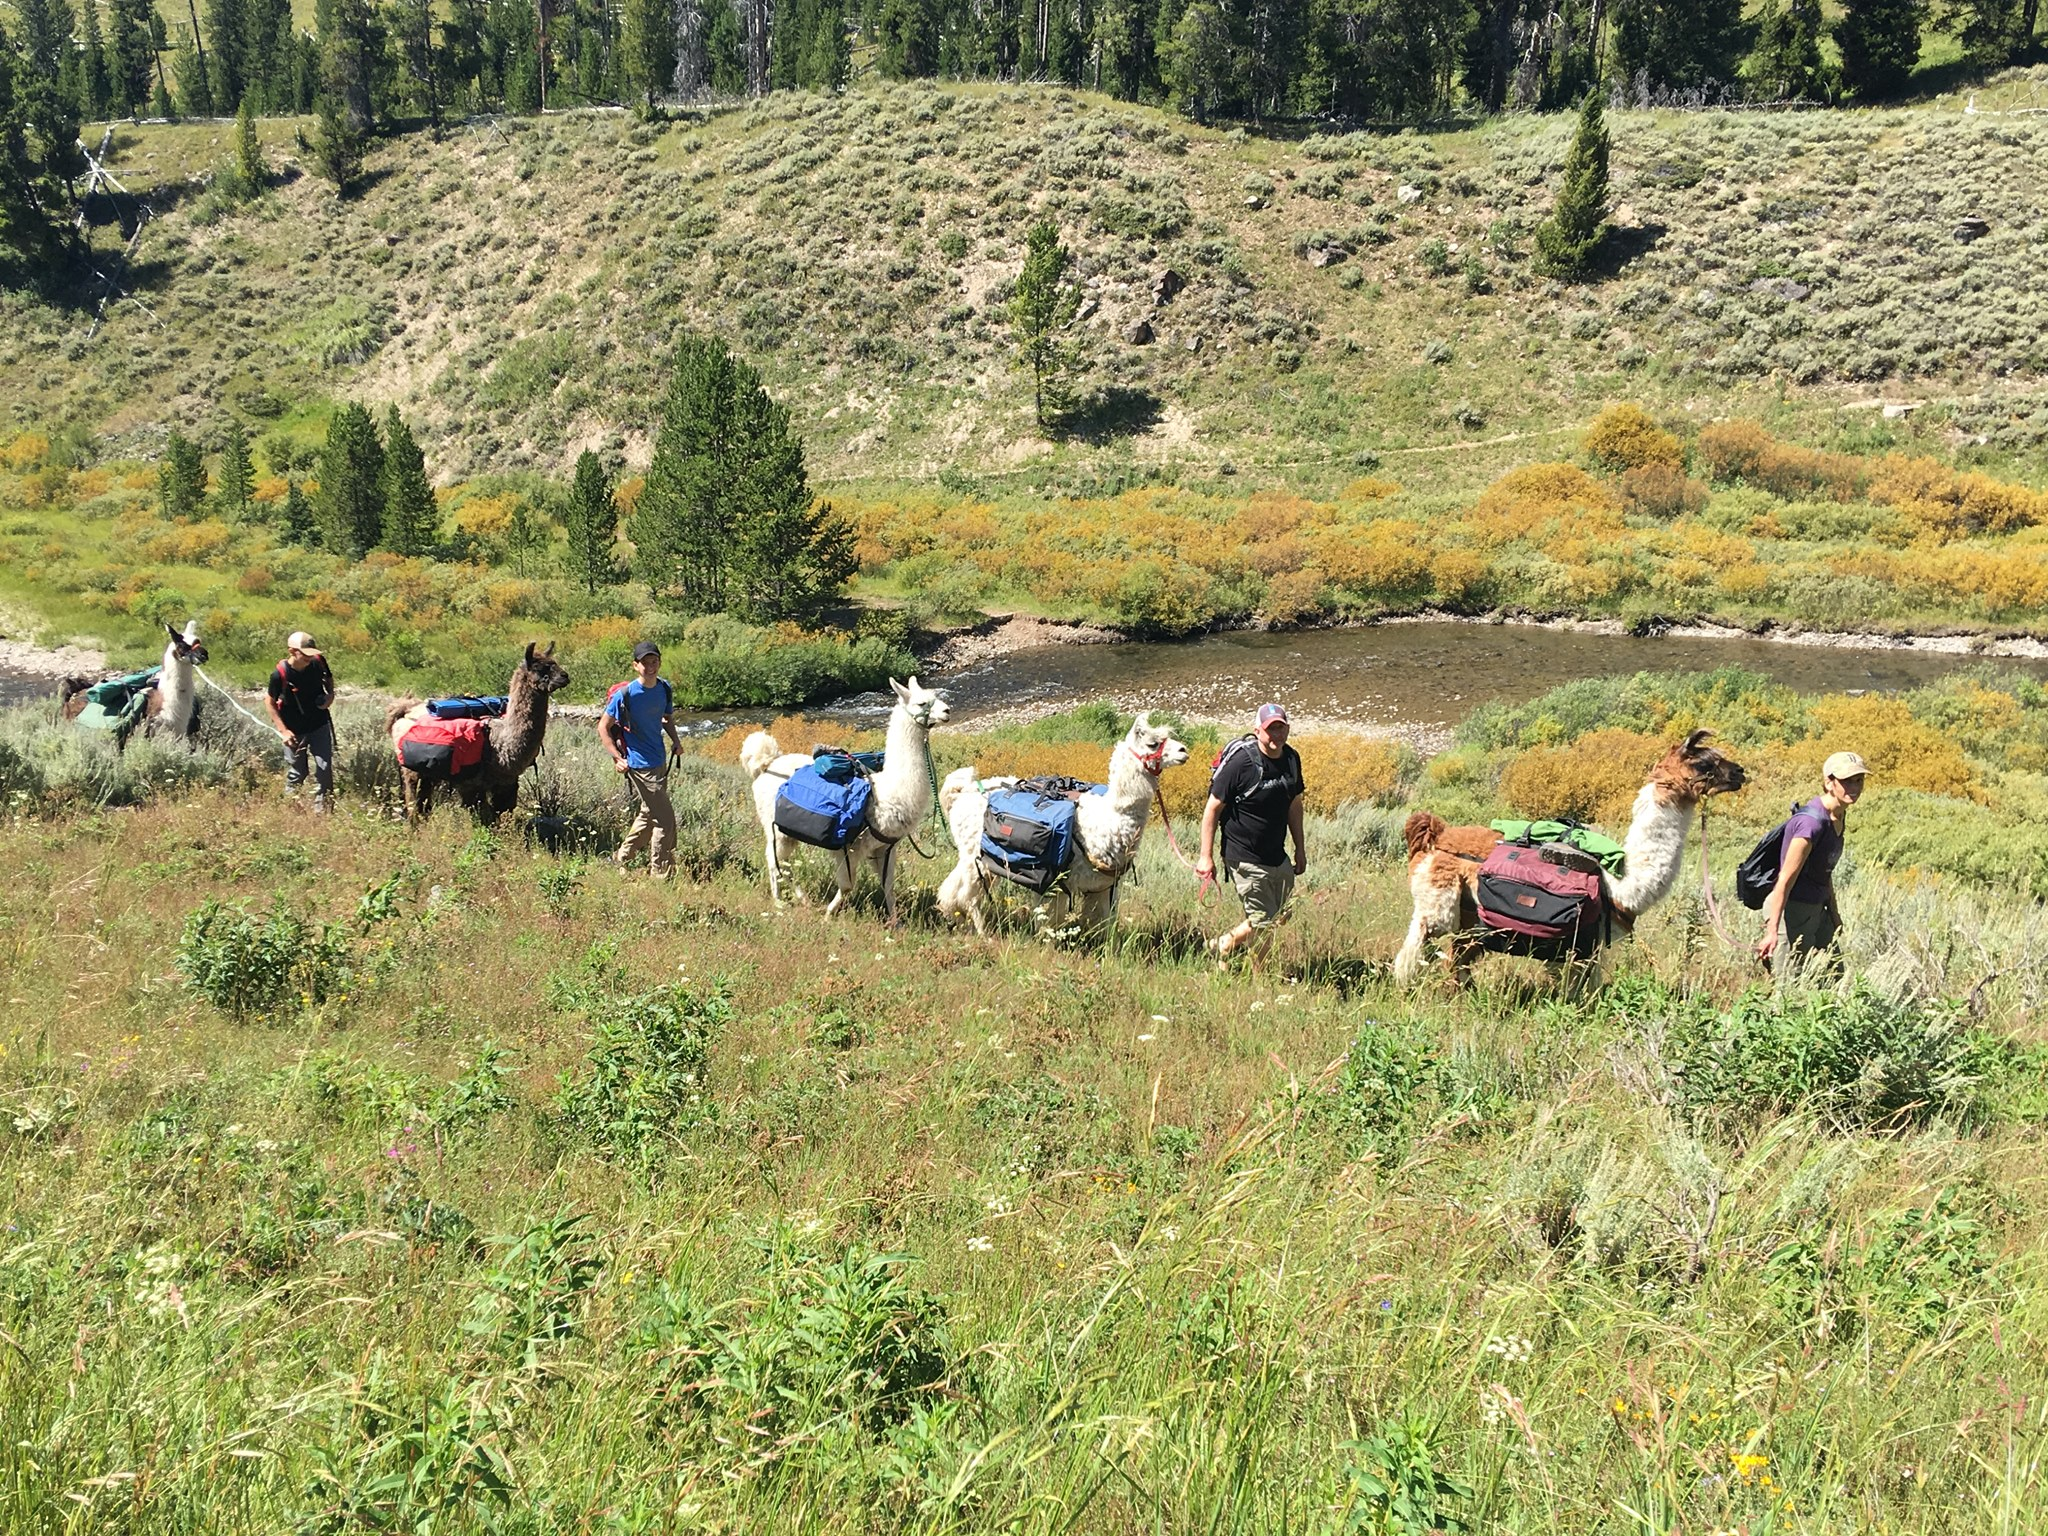 Embark On A Llama Safari Through Yellowstone National Park With This Montana Company